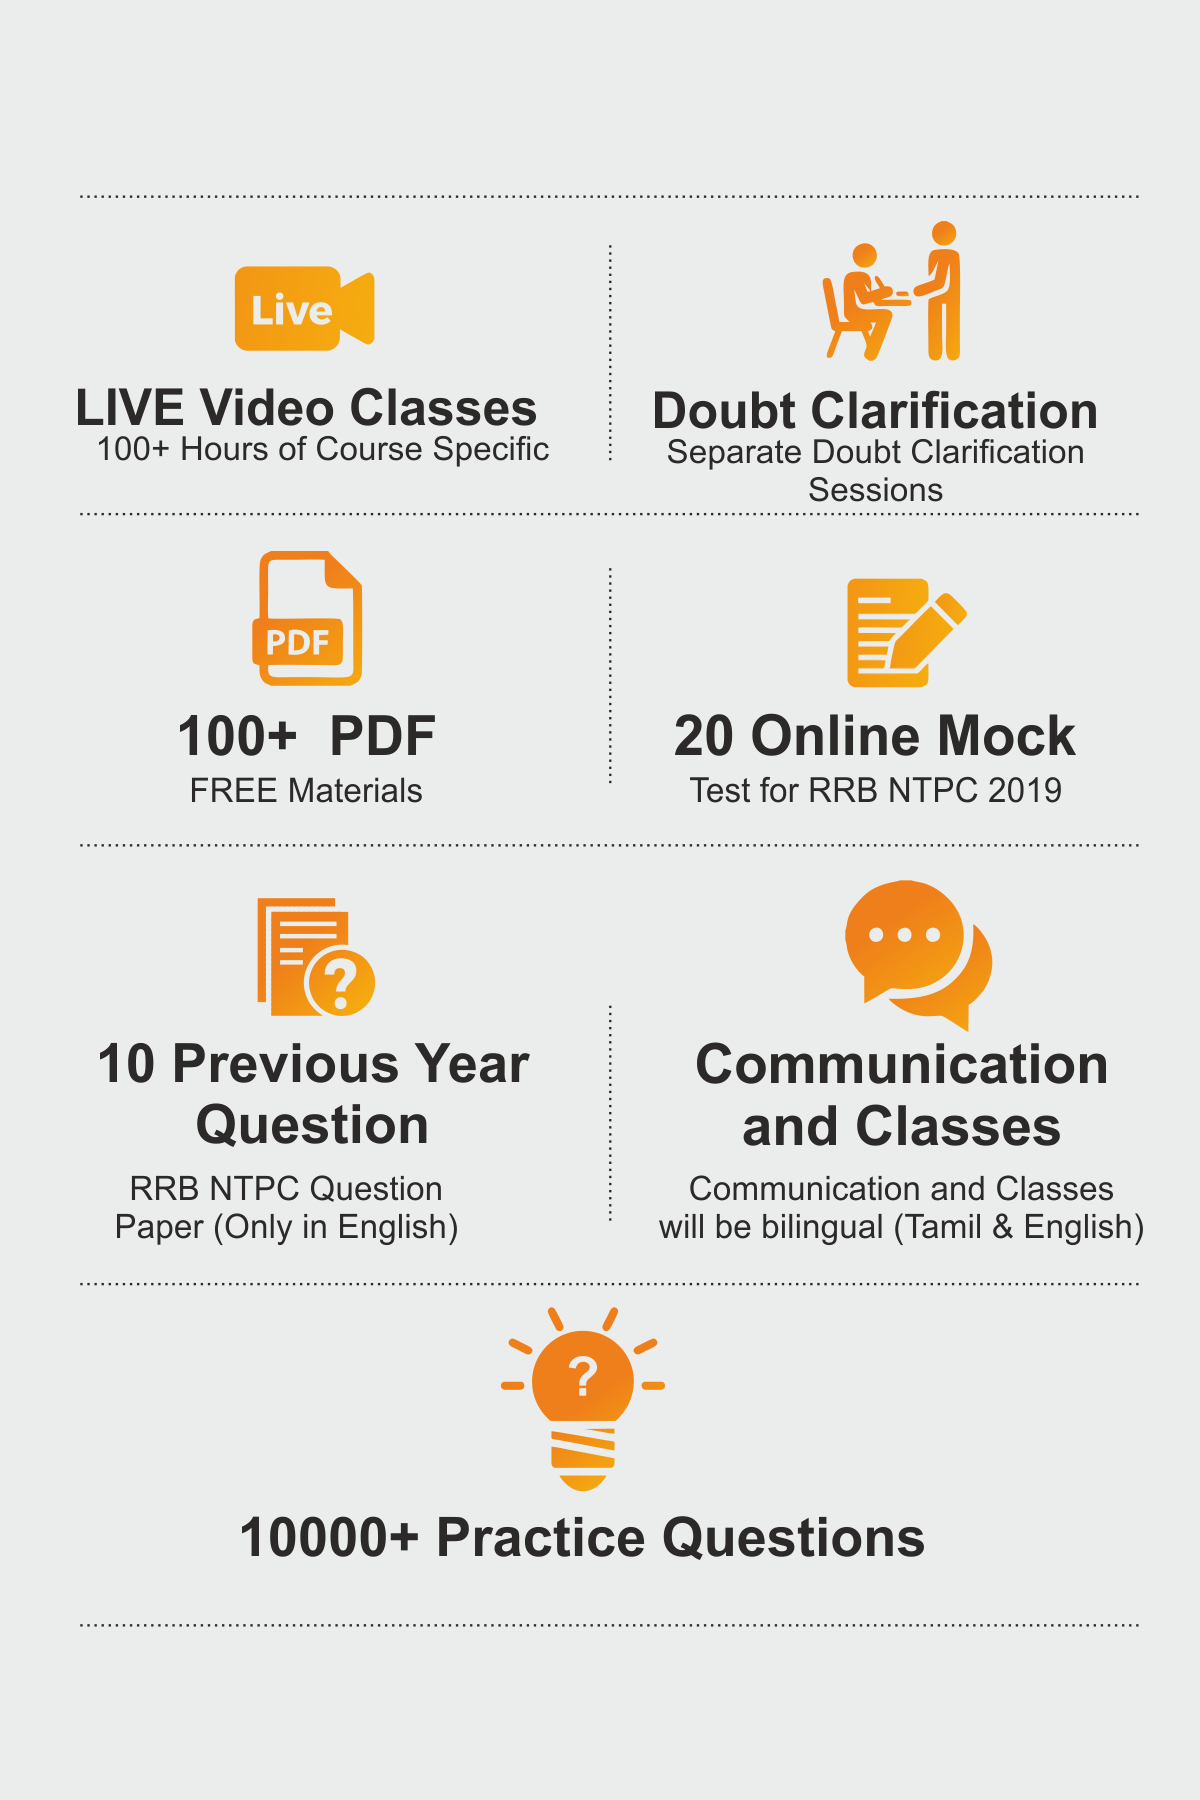 RRB NTPC 2019 – Online Video Classes & Mock Test